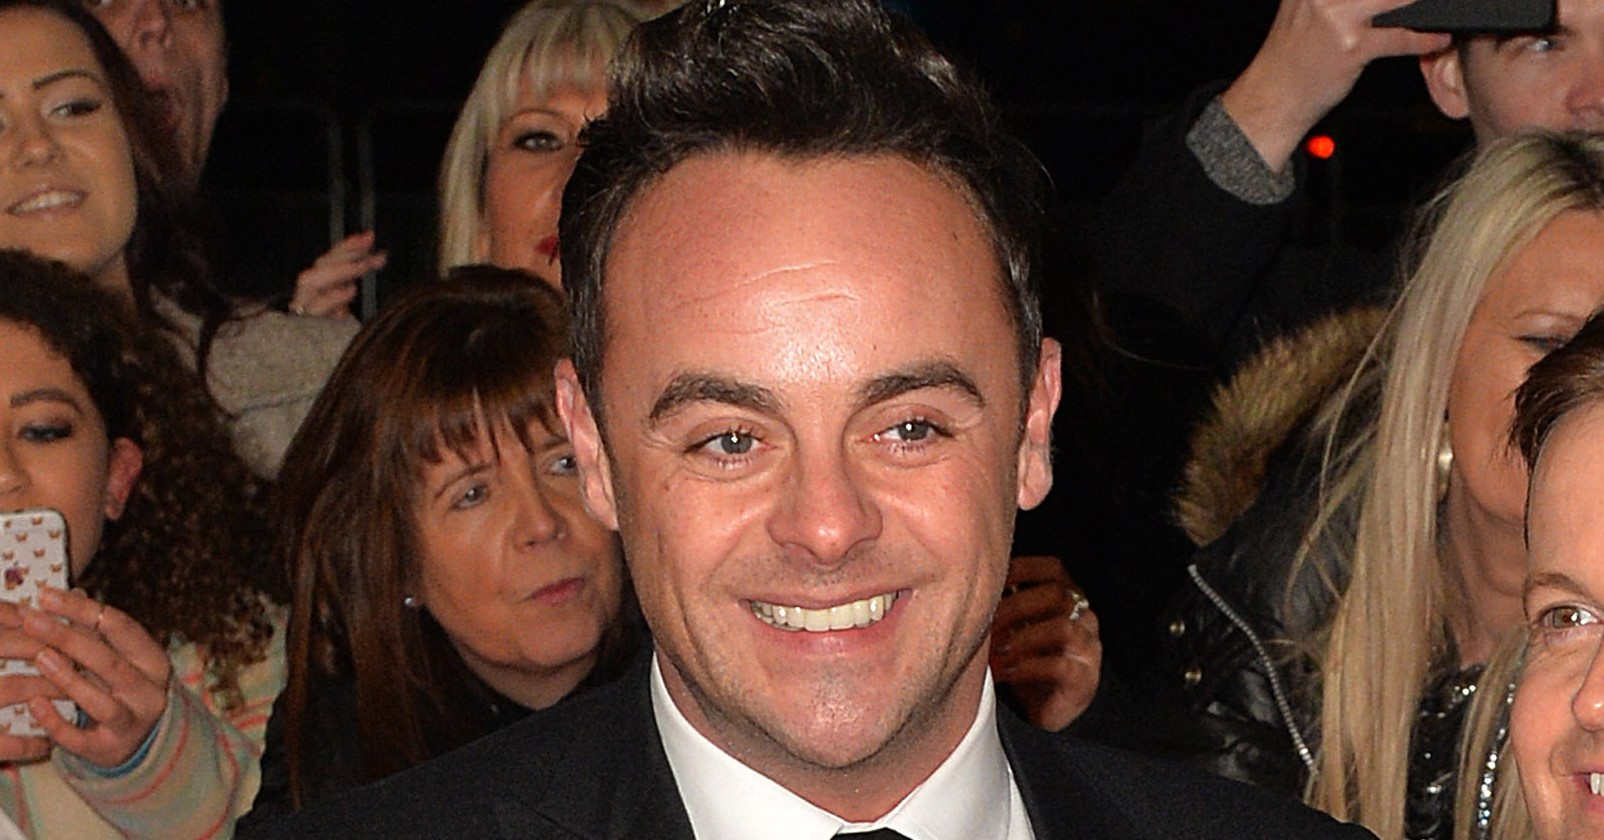 Ant McPartlin returns to Twitter to give glimpse into his family life